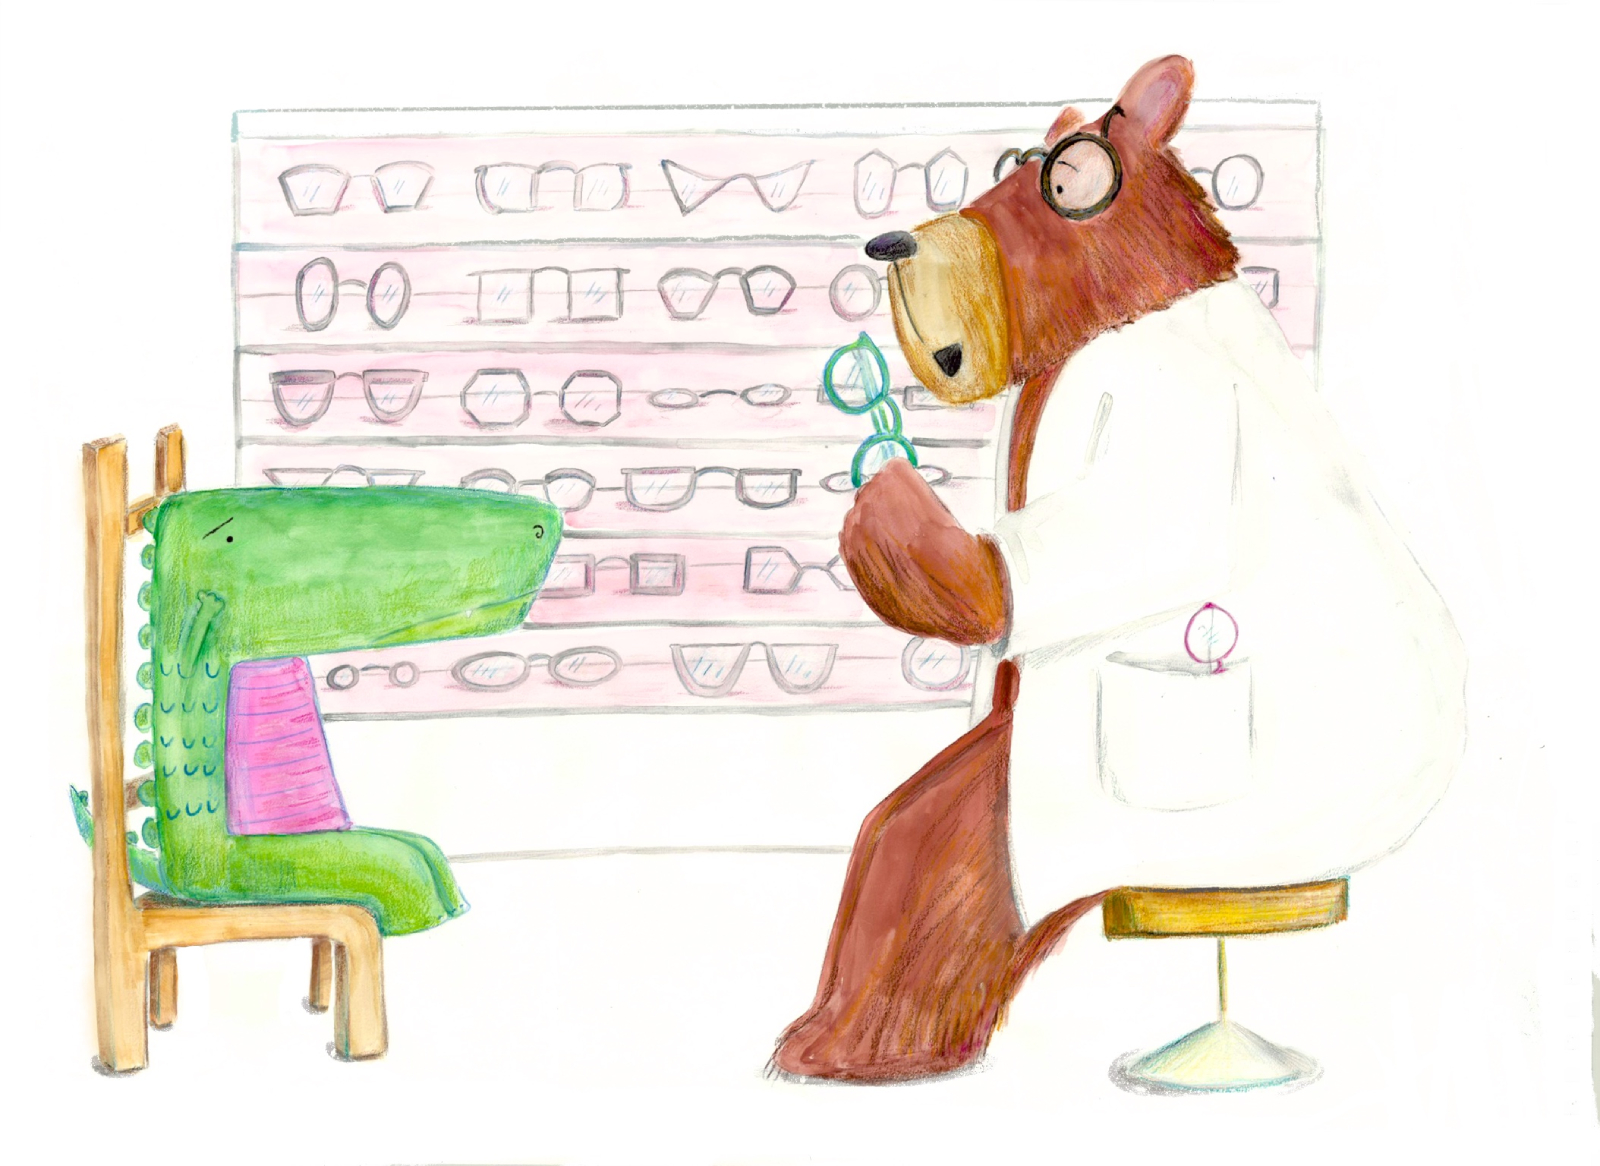 T-Rex is joined by the bear eye doctor